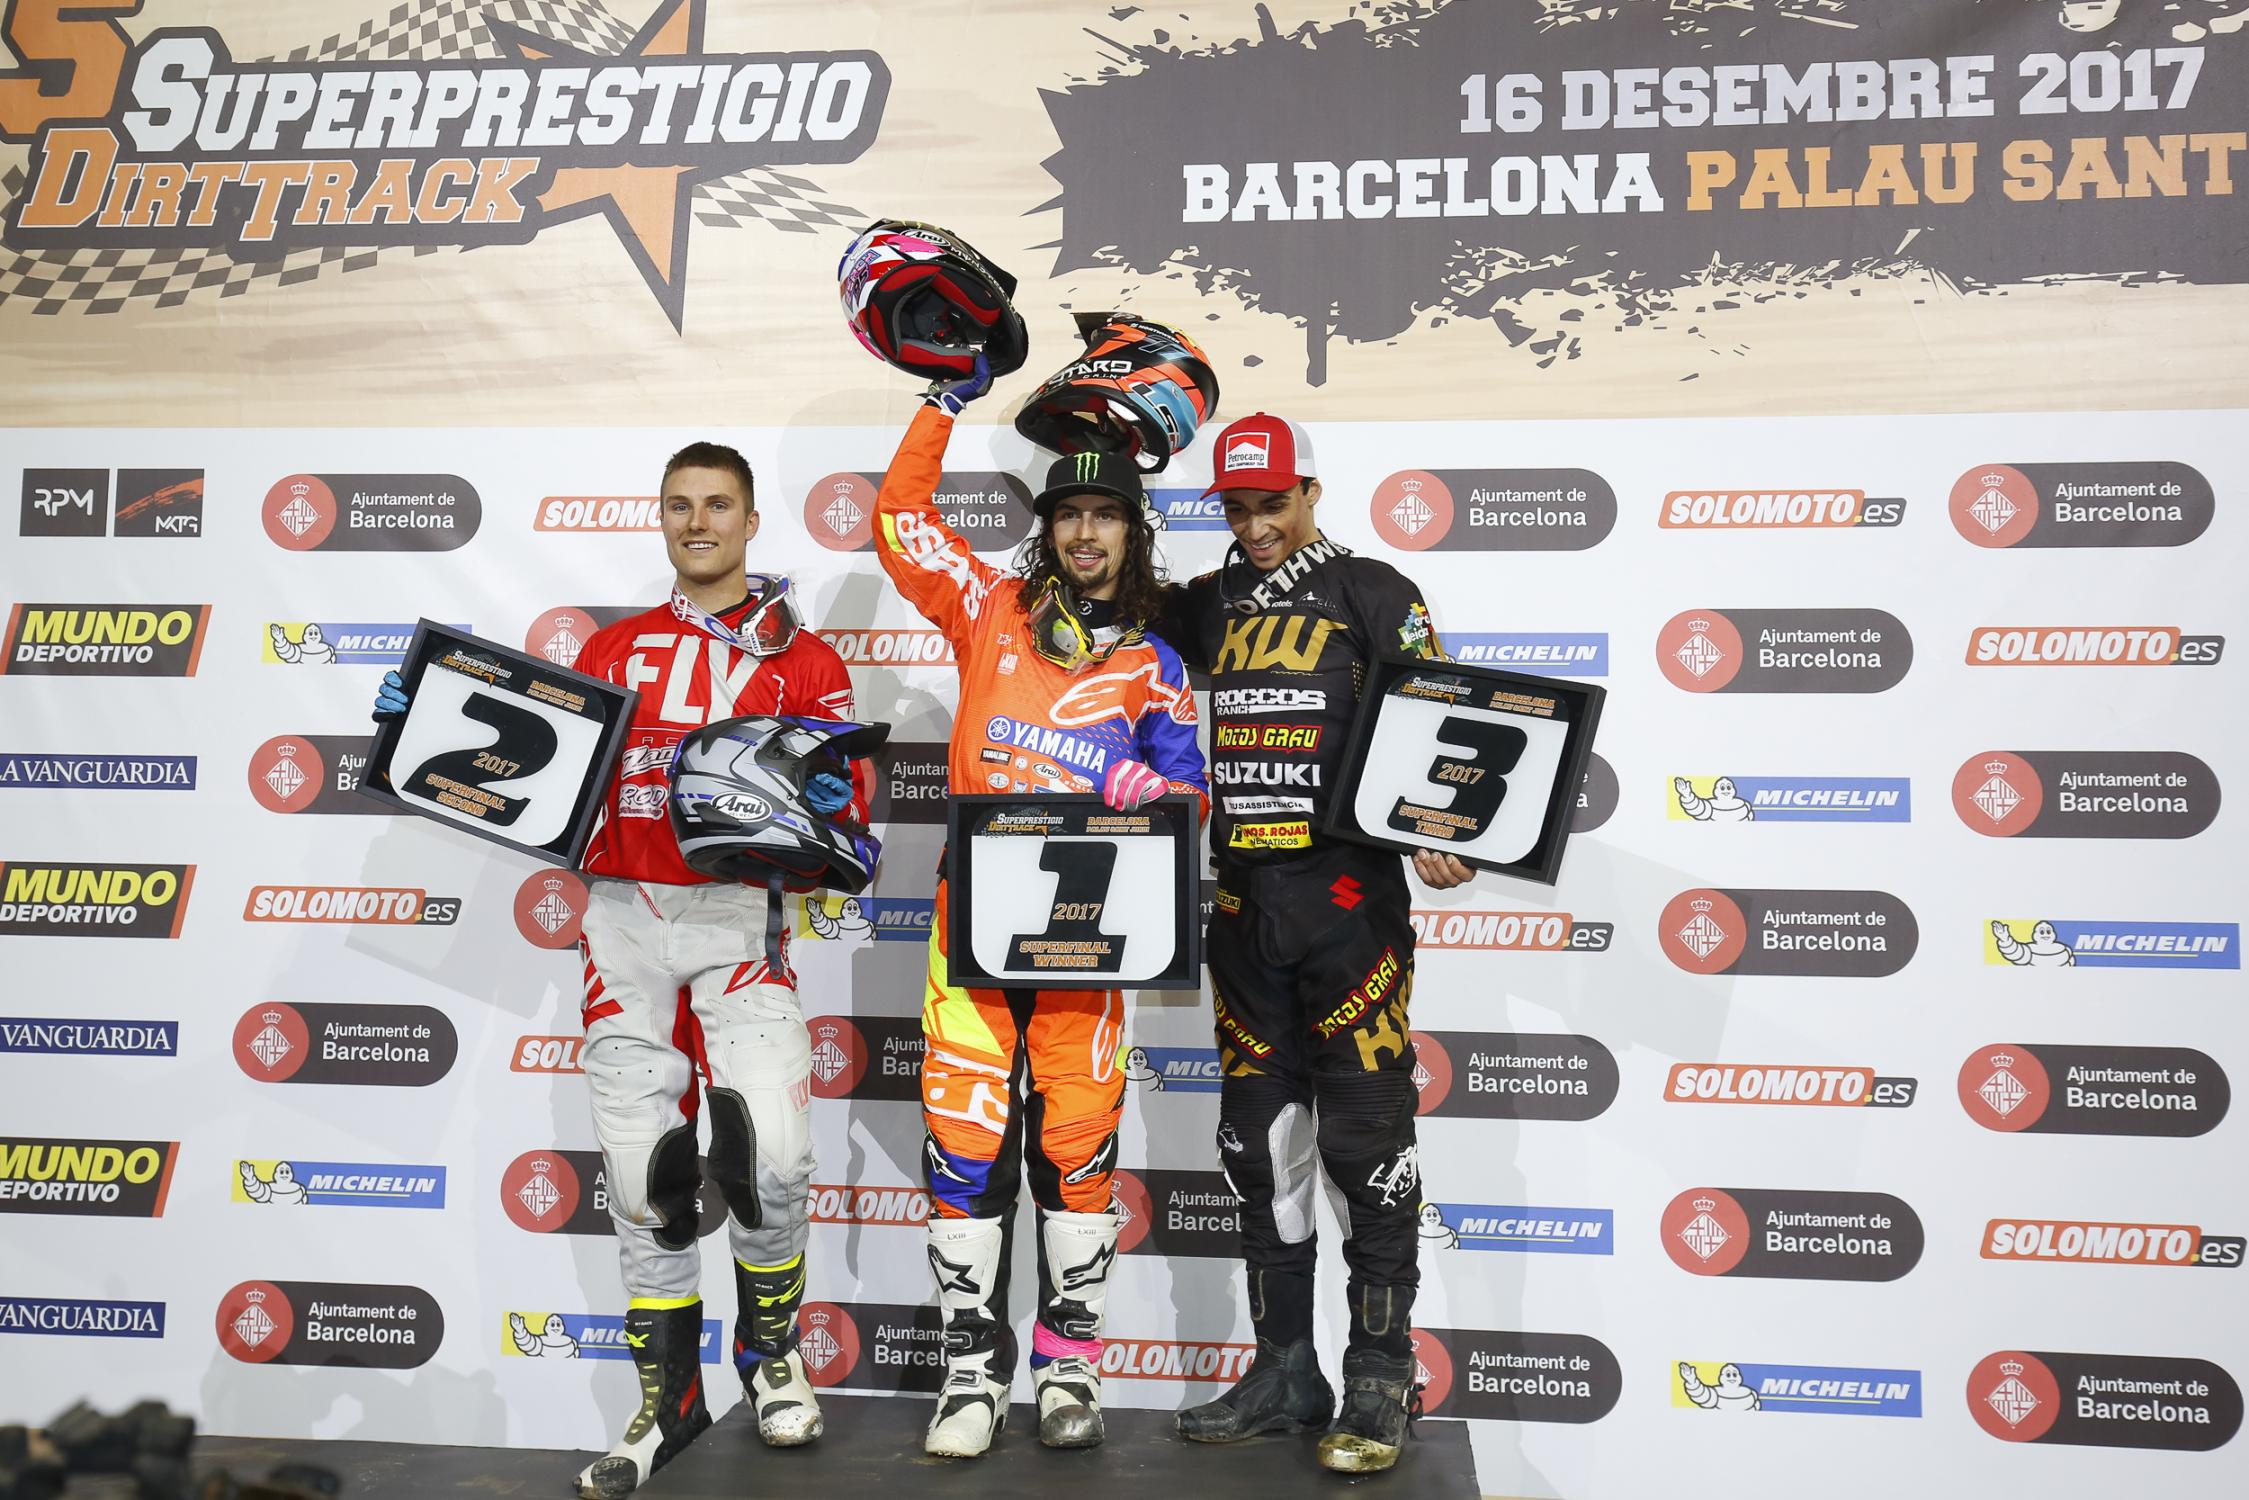 Superprestigio 2017 Podium